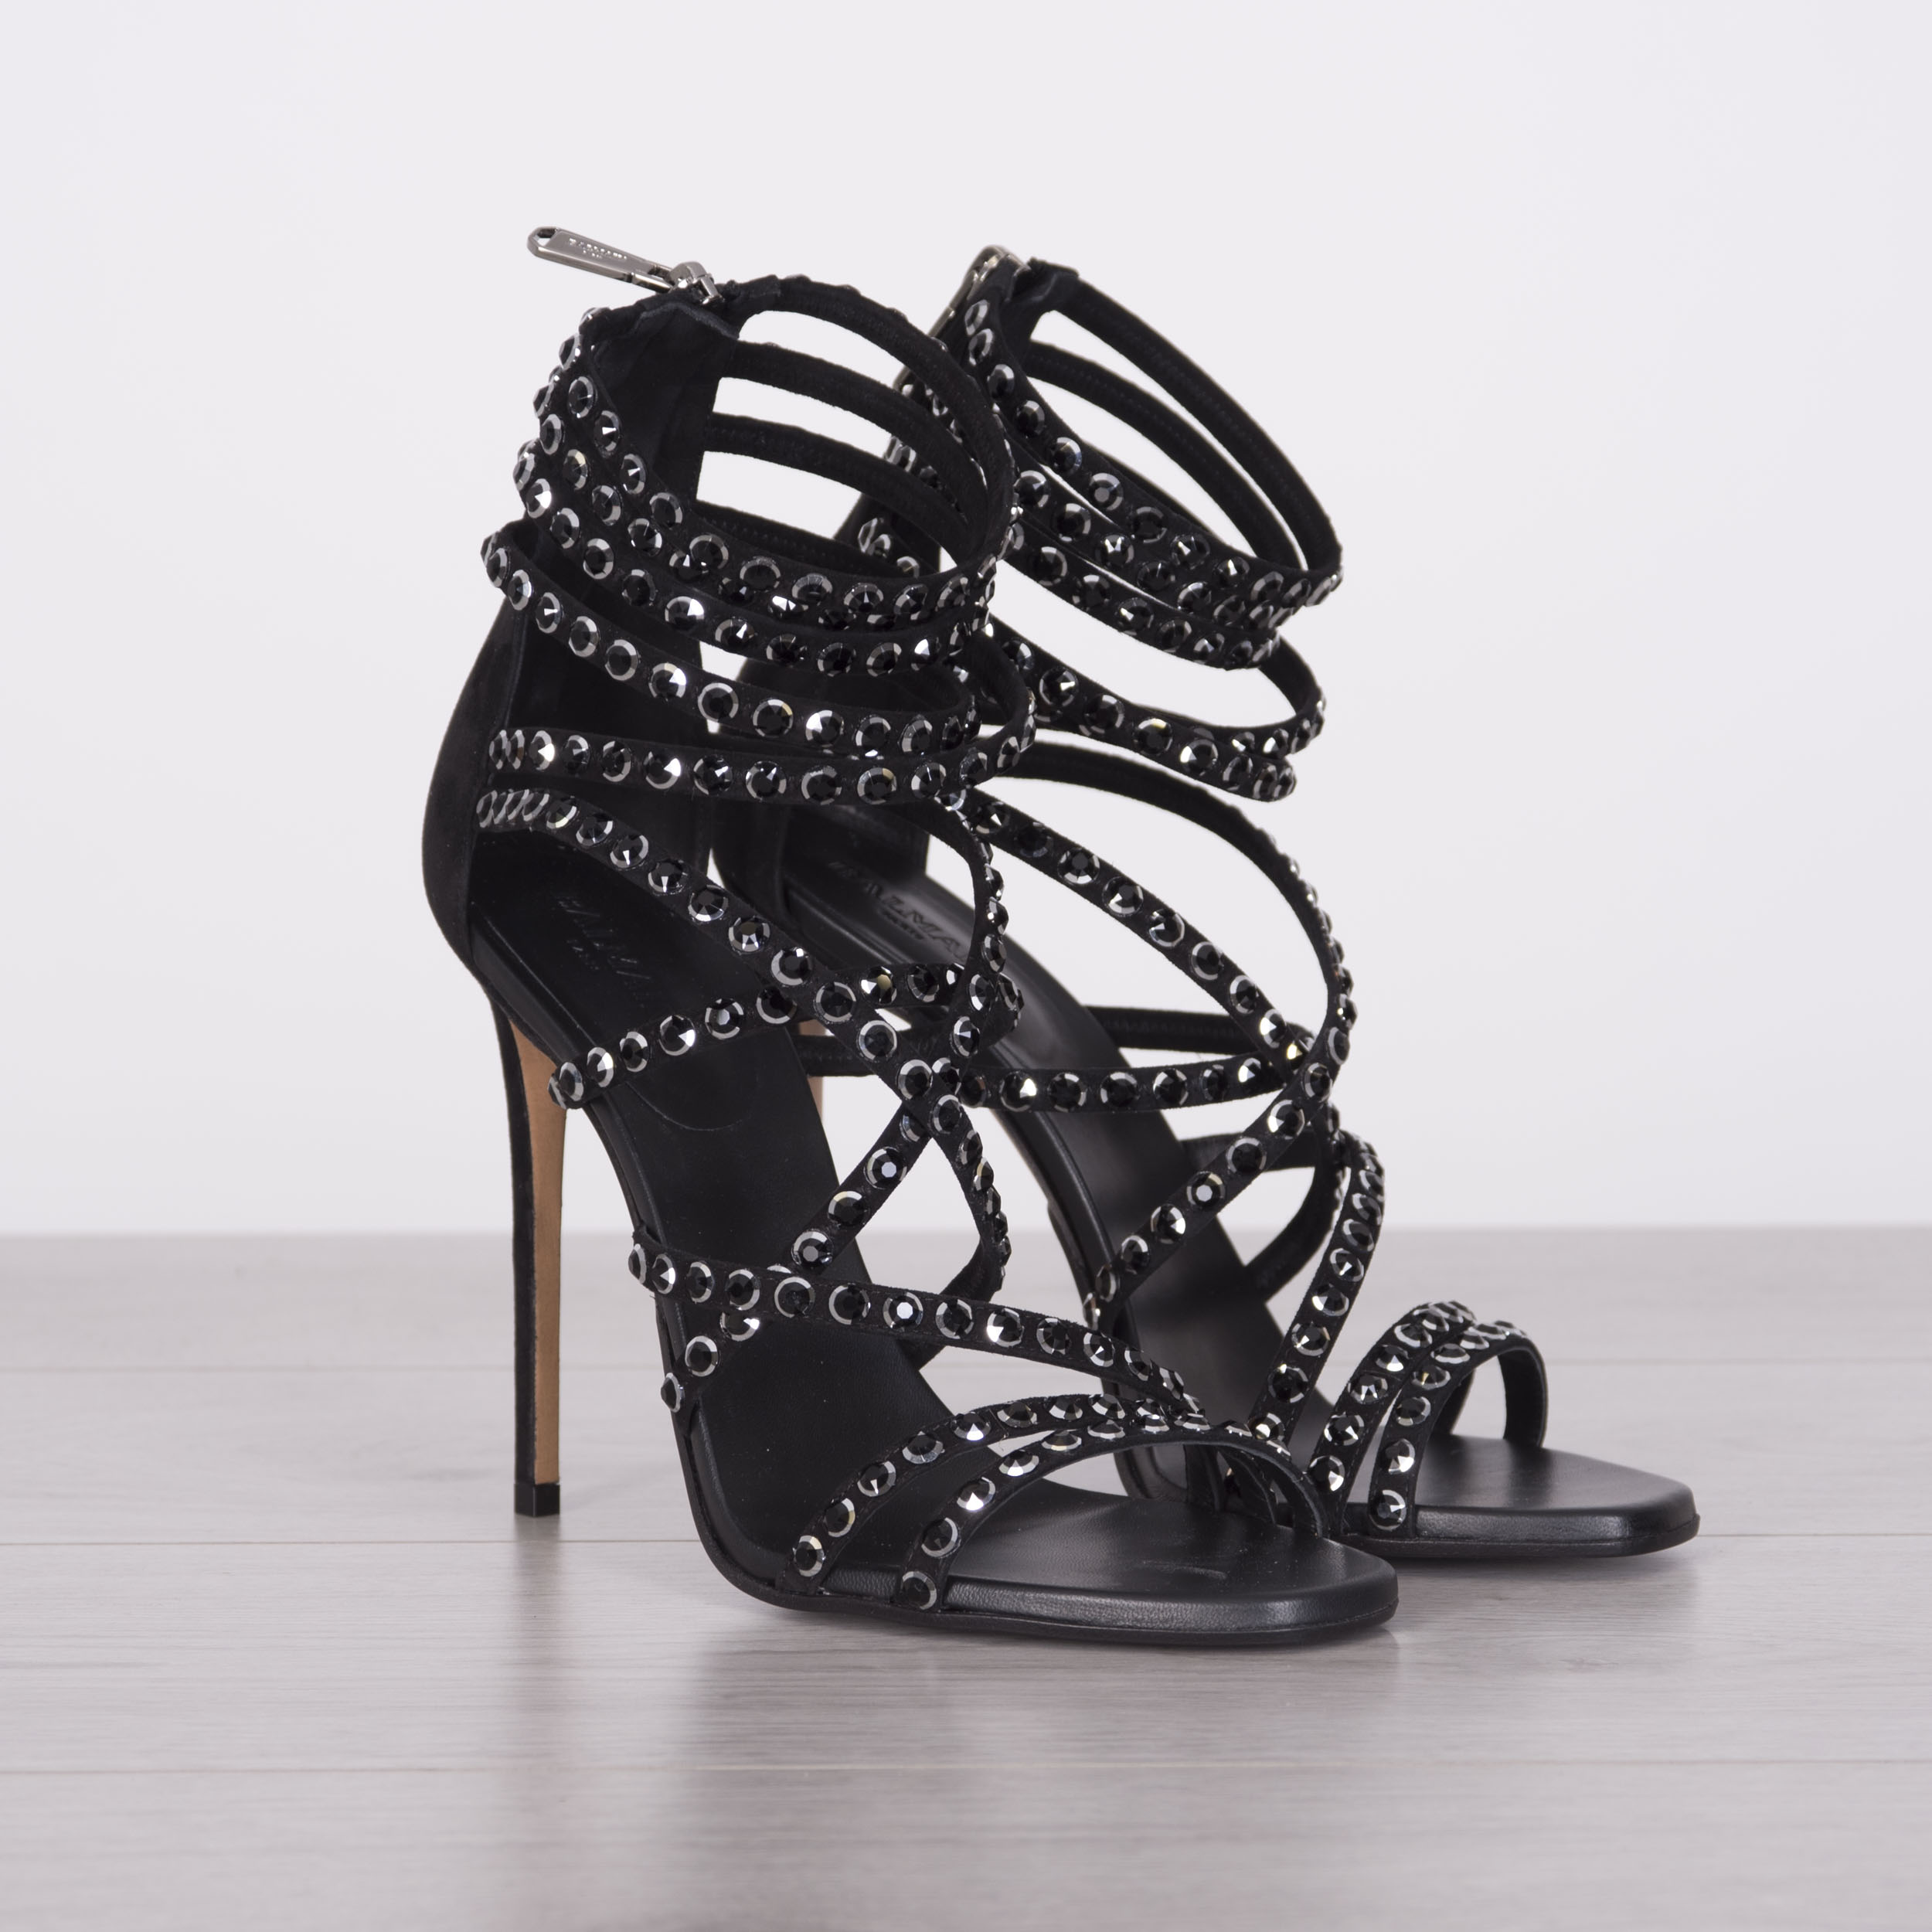 843e0aa9f03e Details about BALMAIN 1490  Authentic New Black Crystal Embellished Strappy  High Heel Sandals